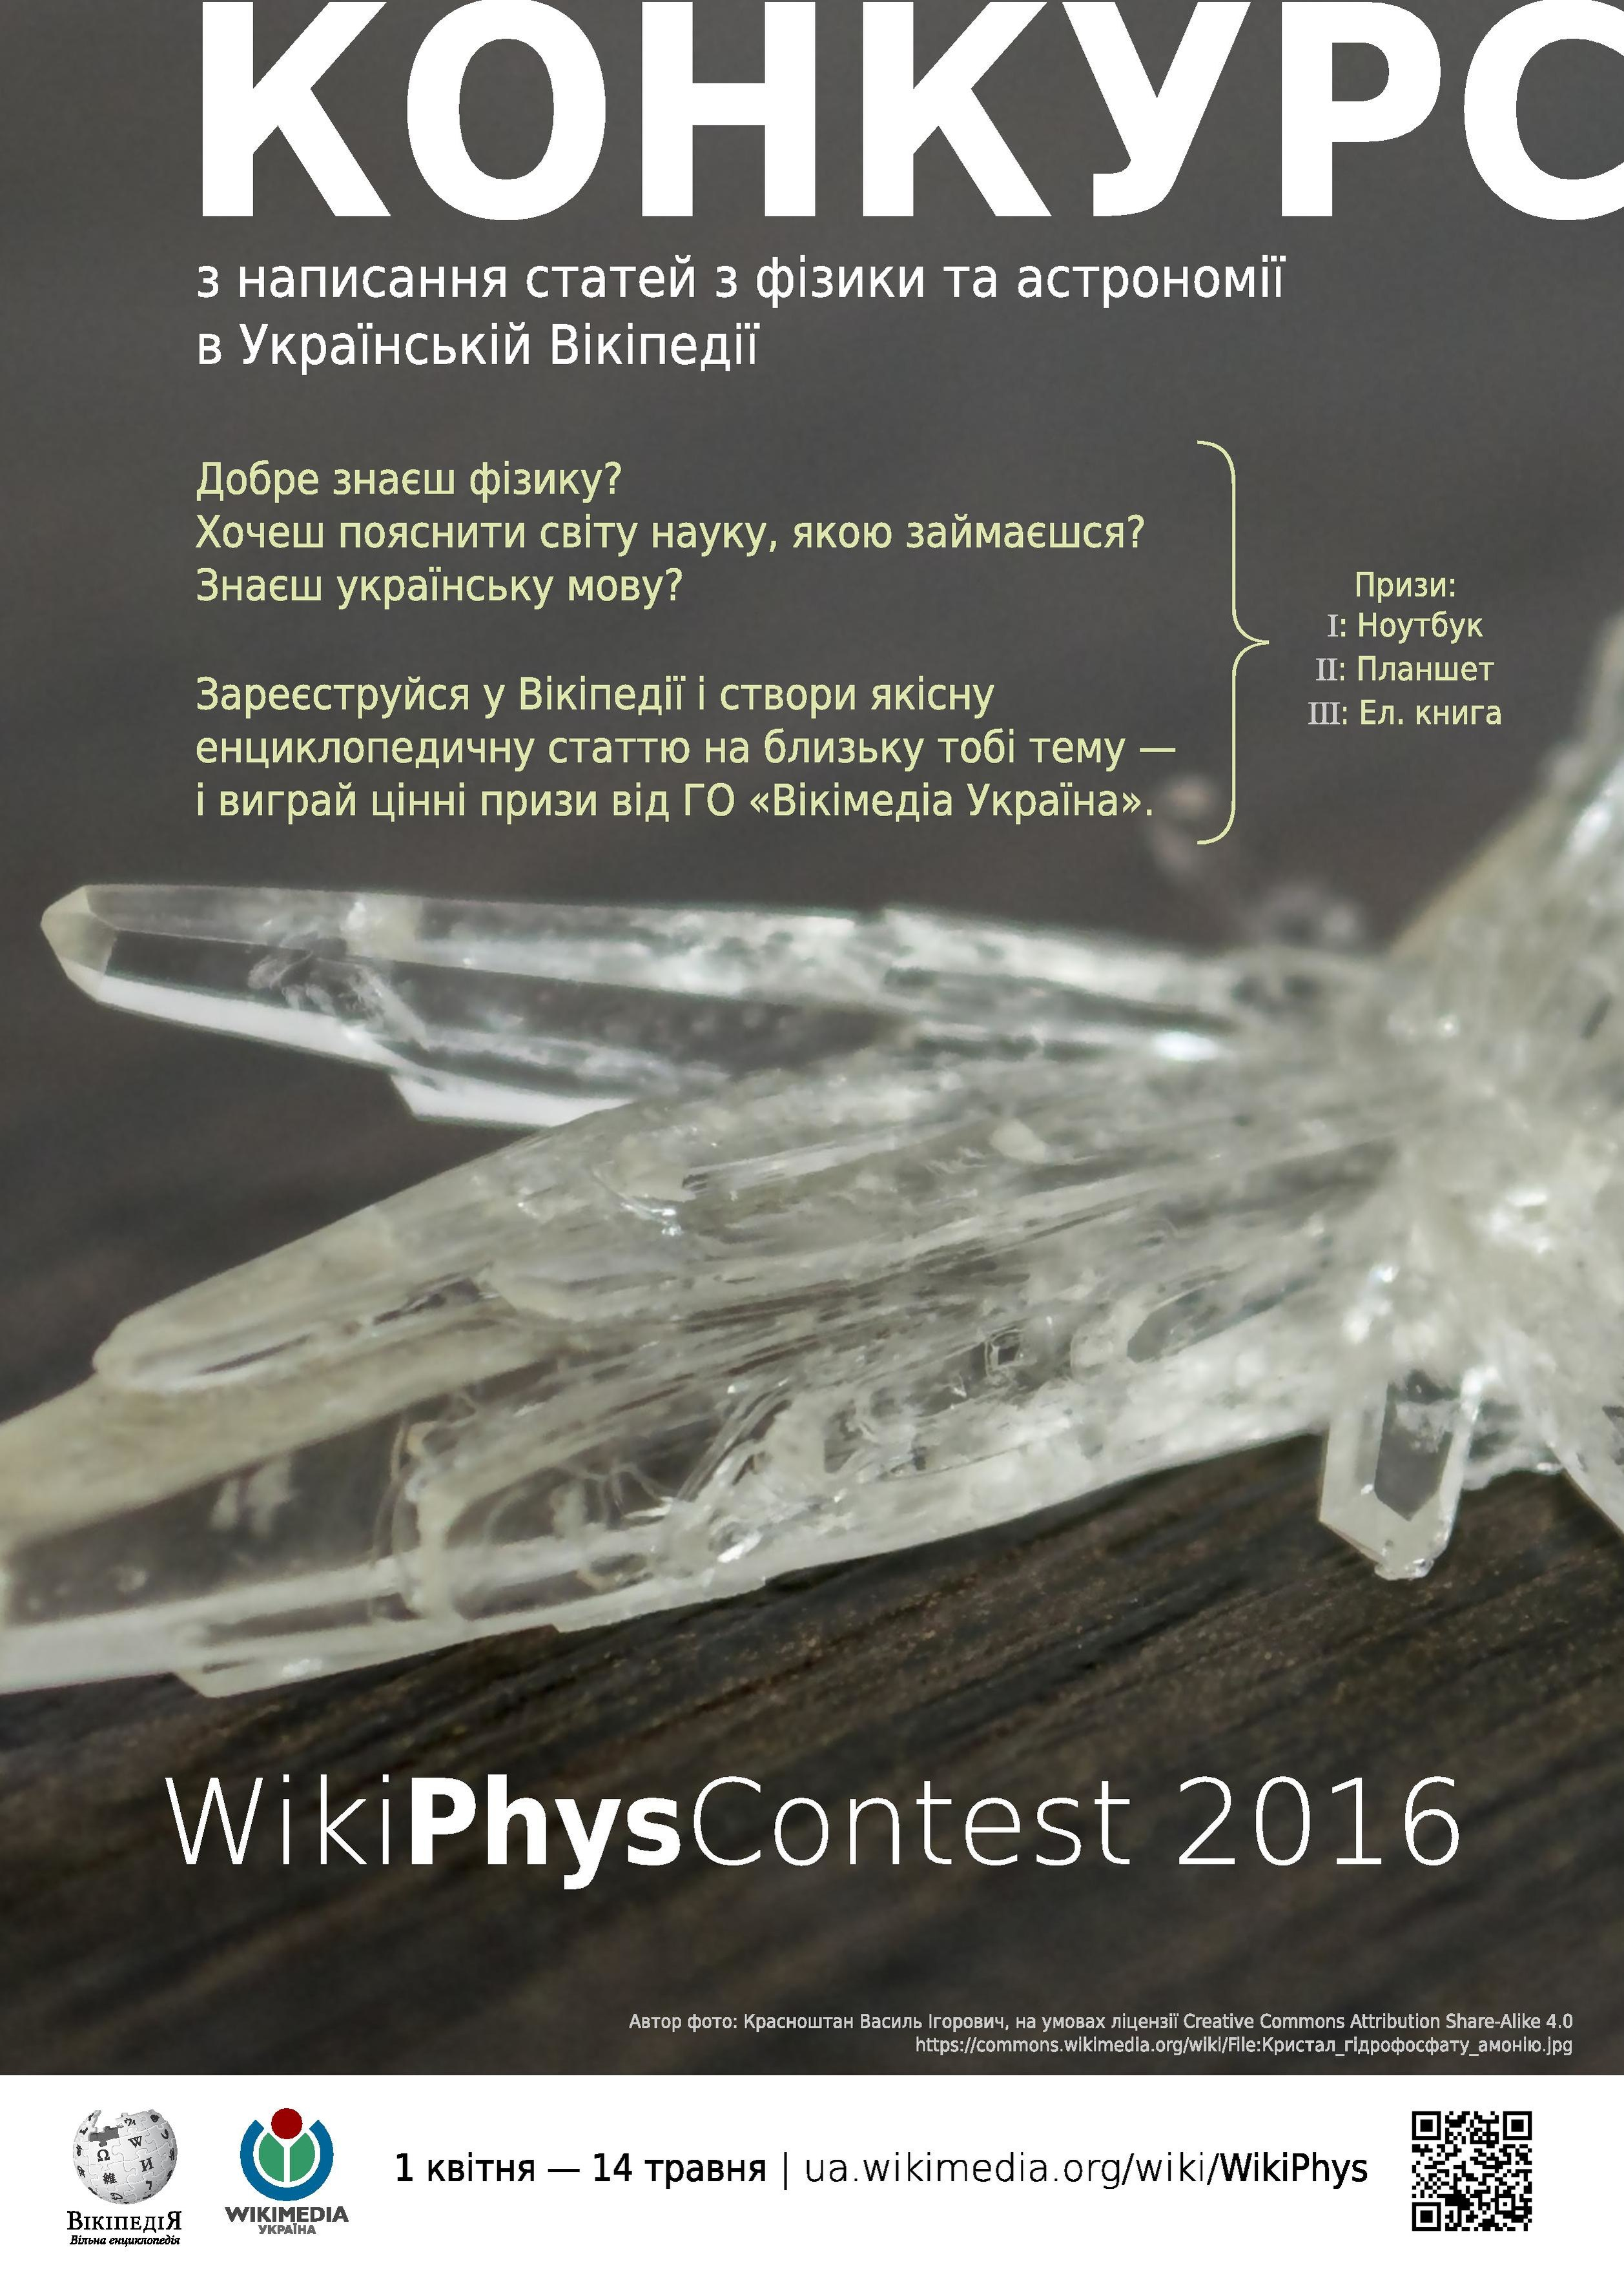 WikiPhysContest-2016-poster.pdf